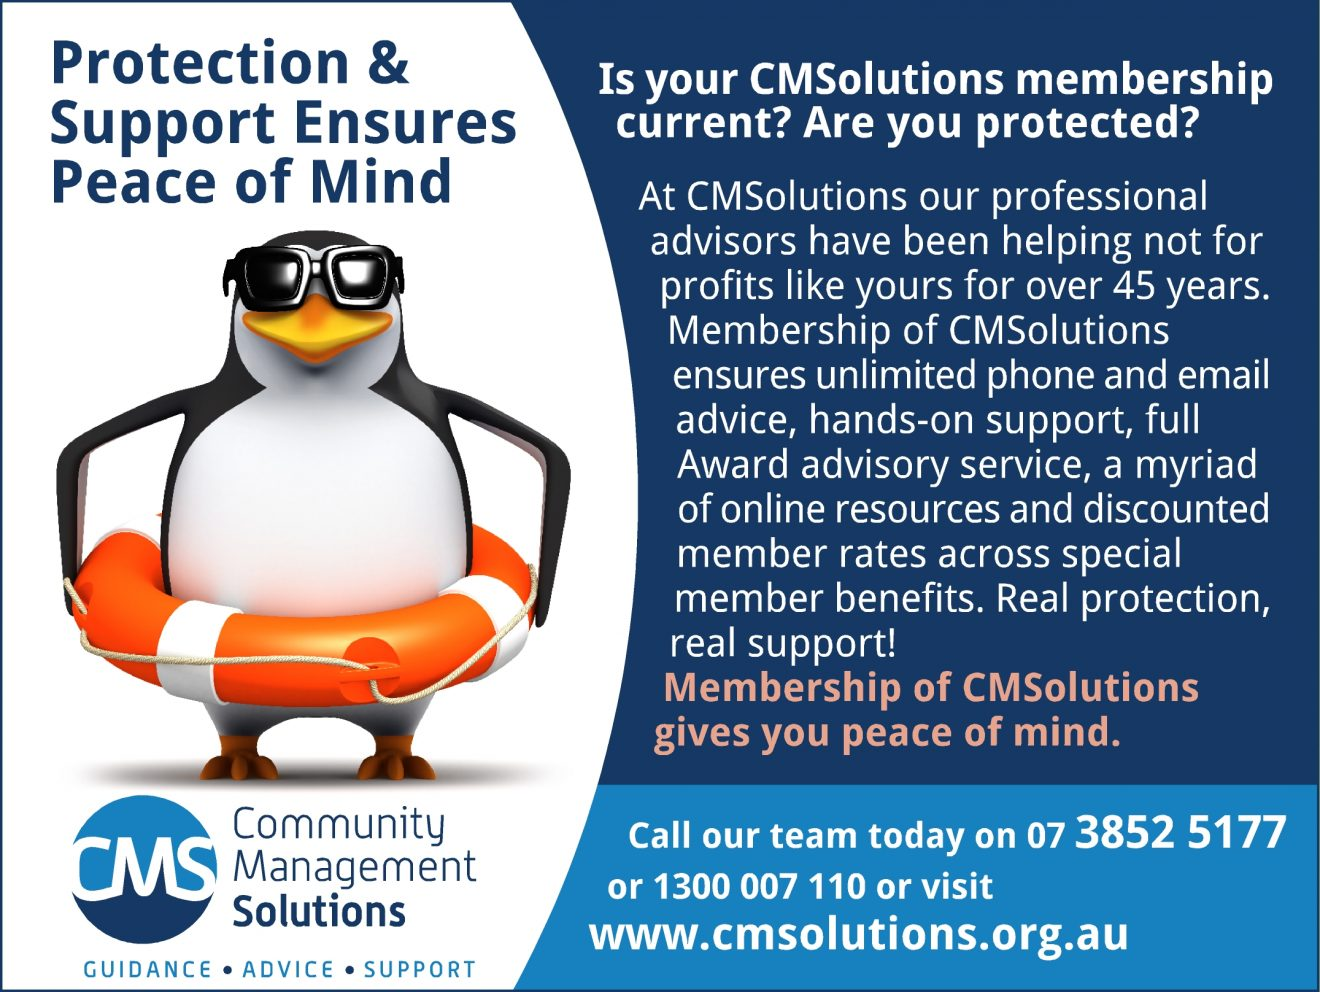 cmsolutions-ad1